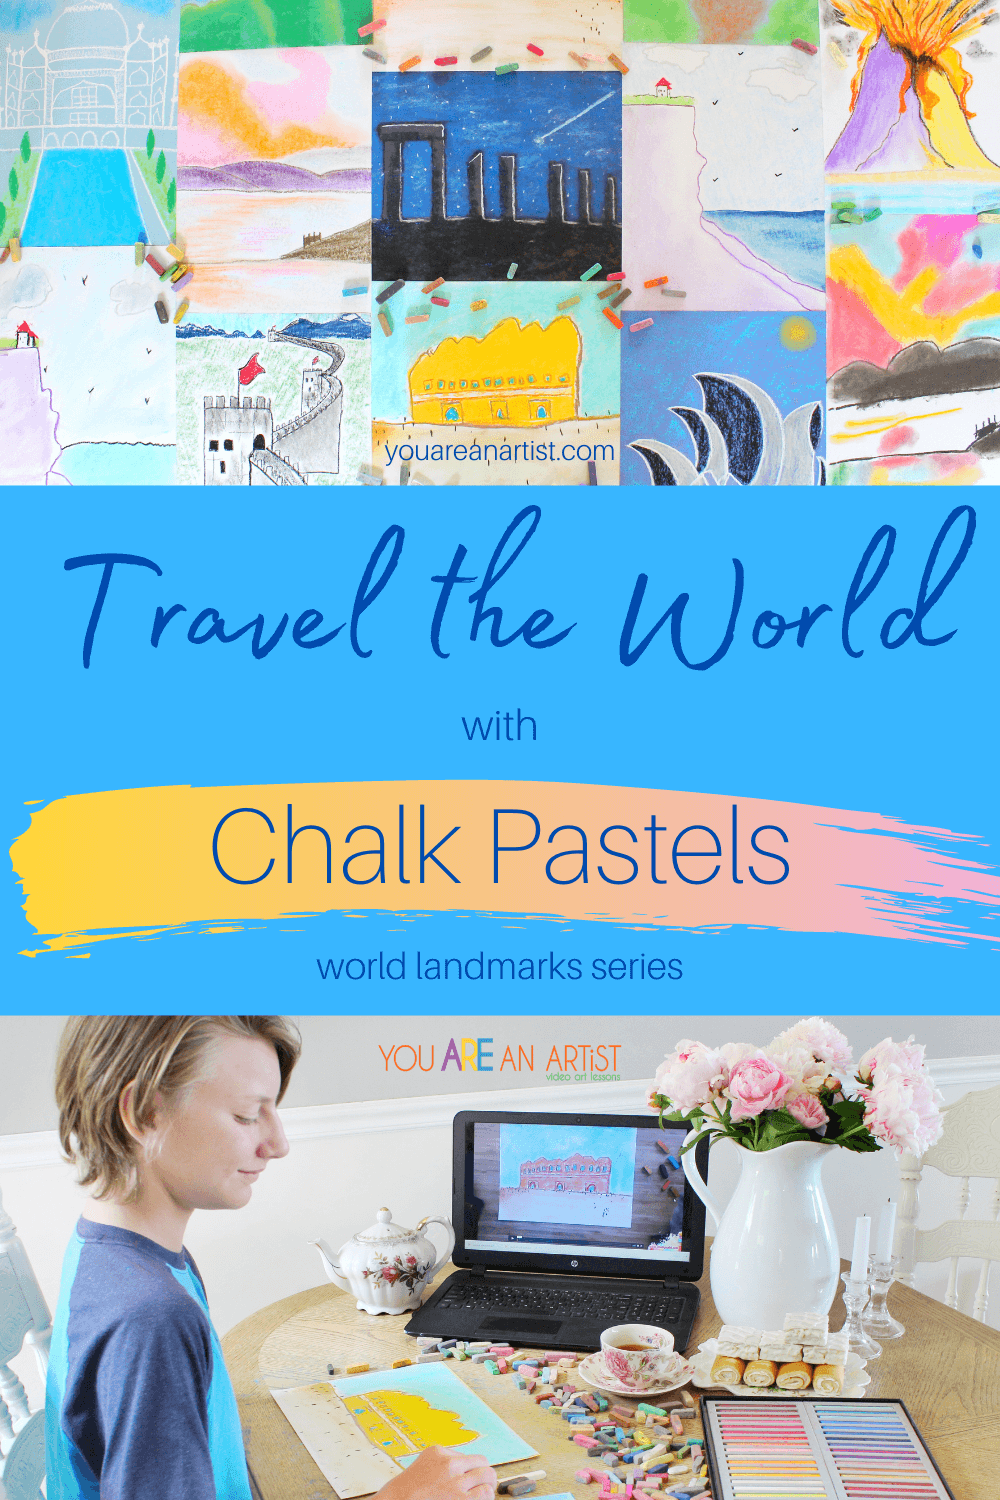 Travel the World with Chalk Pastels: Did you know that you can travel the world with chalk pastels? That's right! Let Nana take you on a trip around the world with her World Landmarks series! This is the prefect addition to your homeschool geography lessons, world history lessons, or just because! #YouAREAnArtist #chalkpastels #homeschool #homeschooling #homeschoolgeography #handsongeography #worldlandmarks #traveltheworldwithchalkpastels